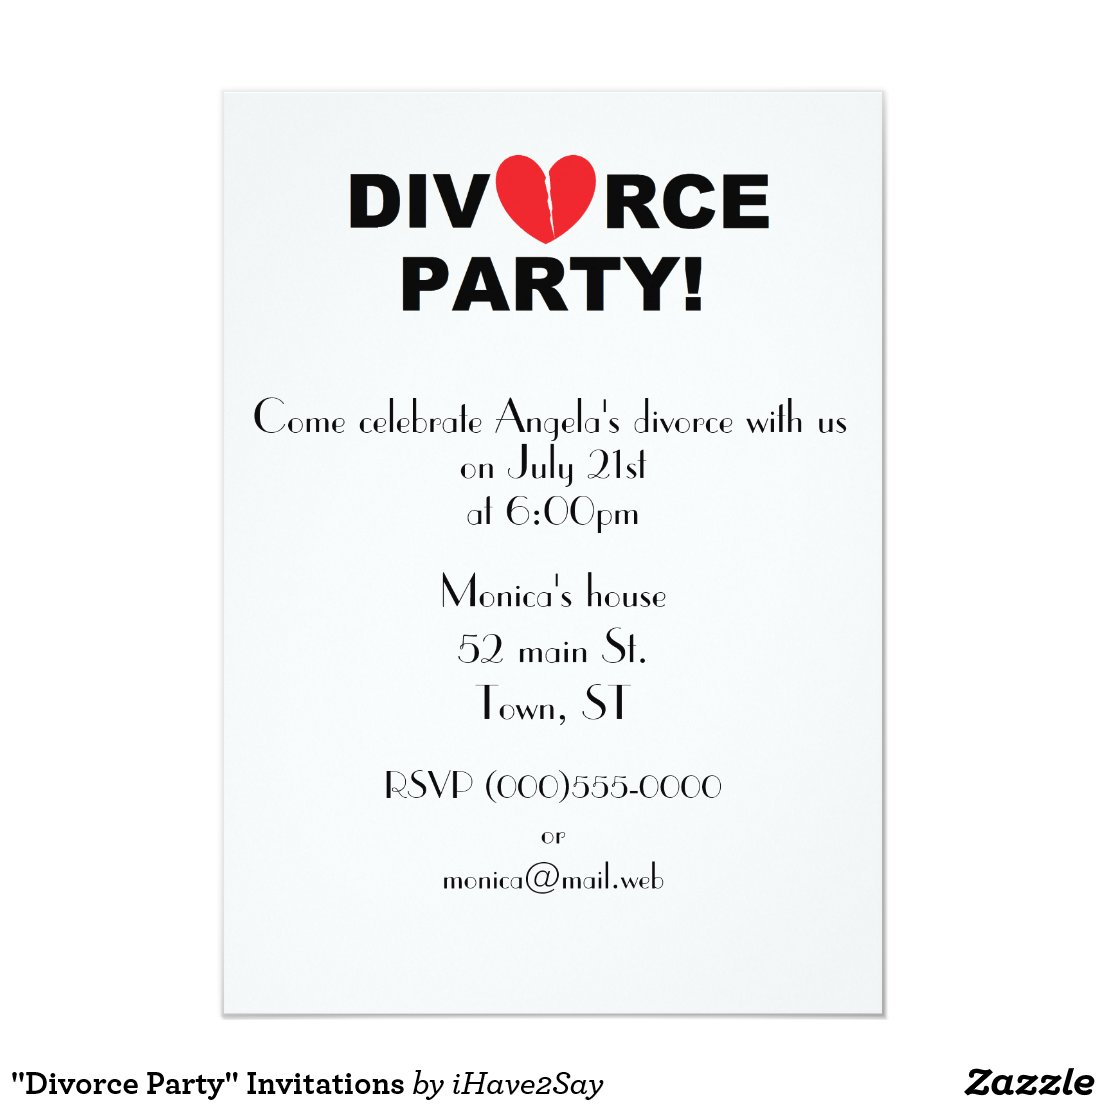 Divorce Party Invitations - 2018 images & pictures - Next Chapter ...